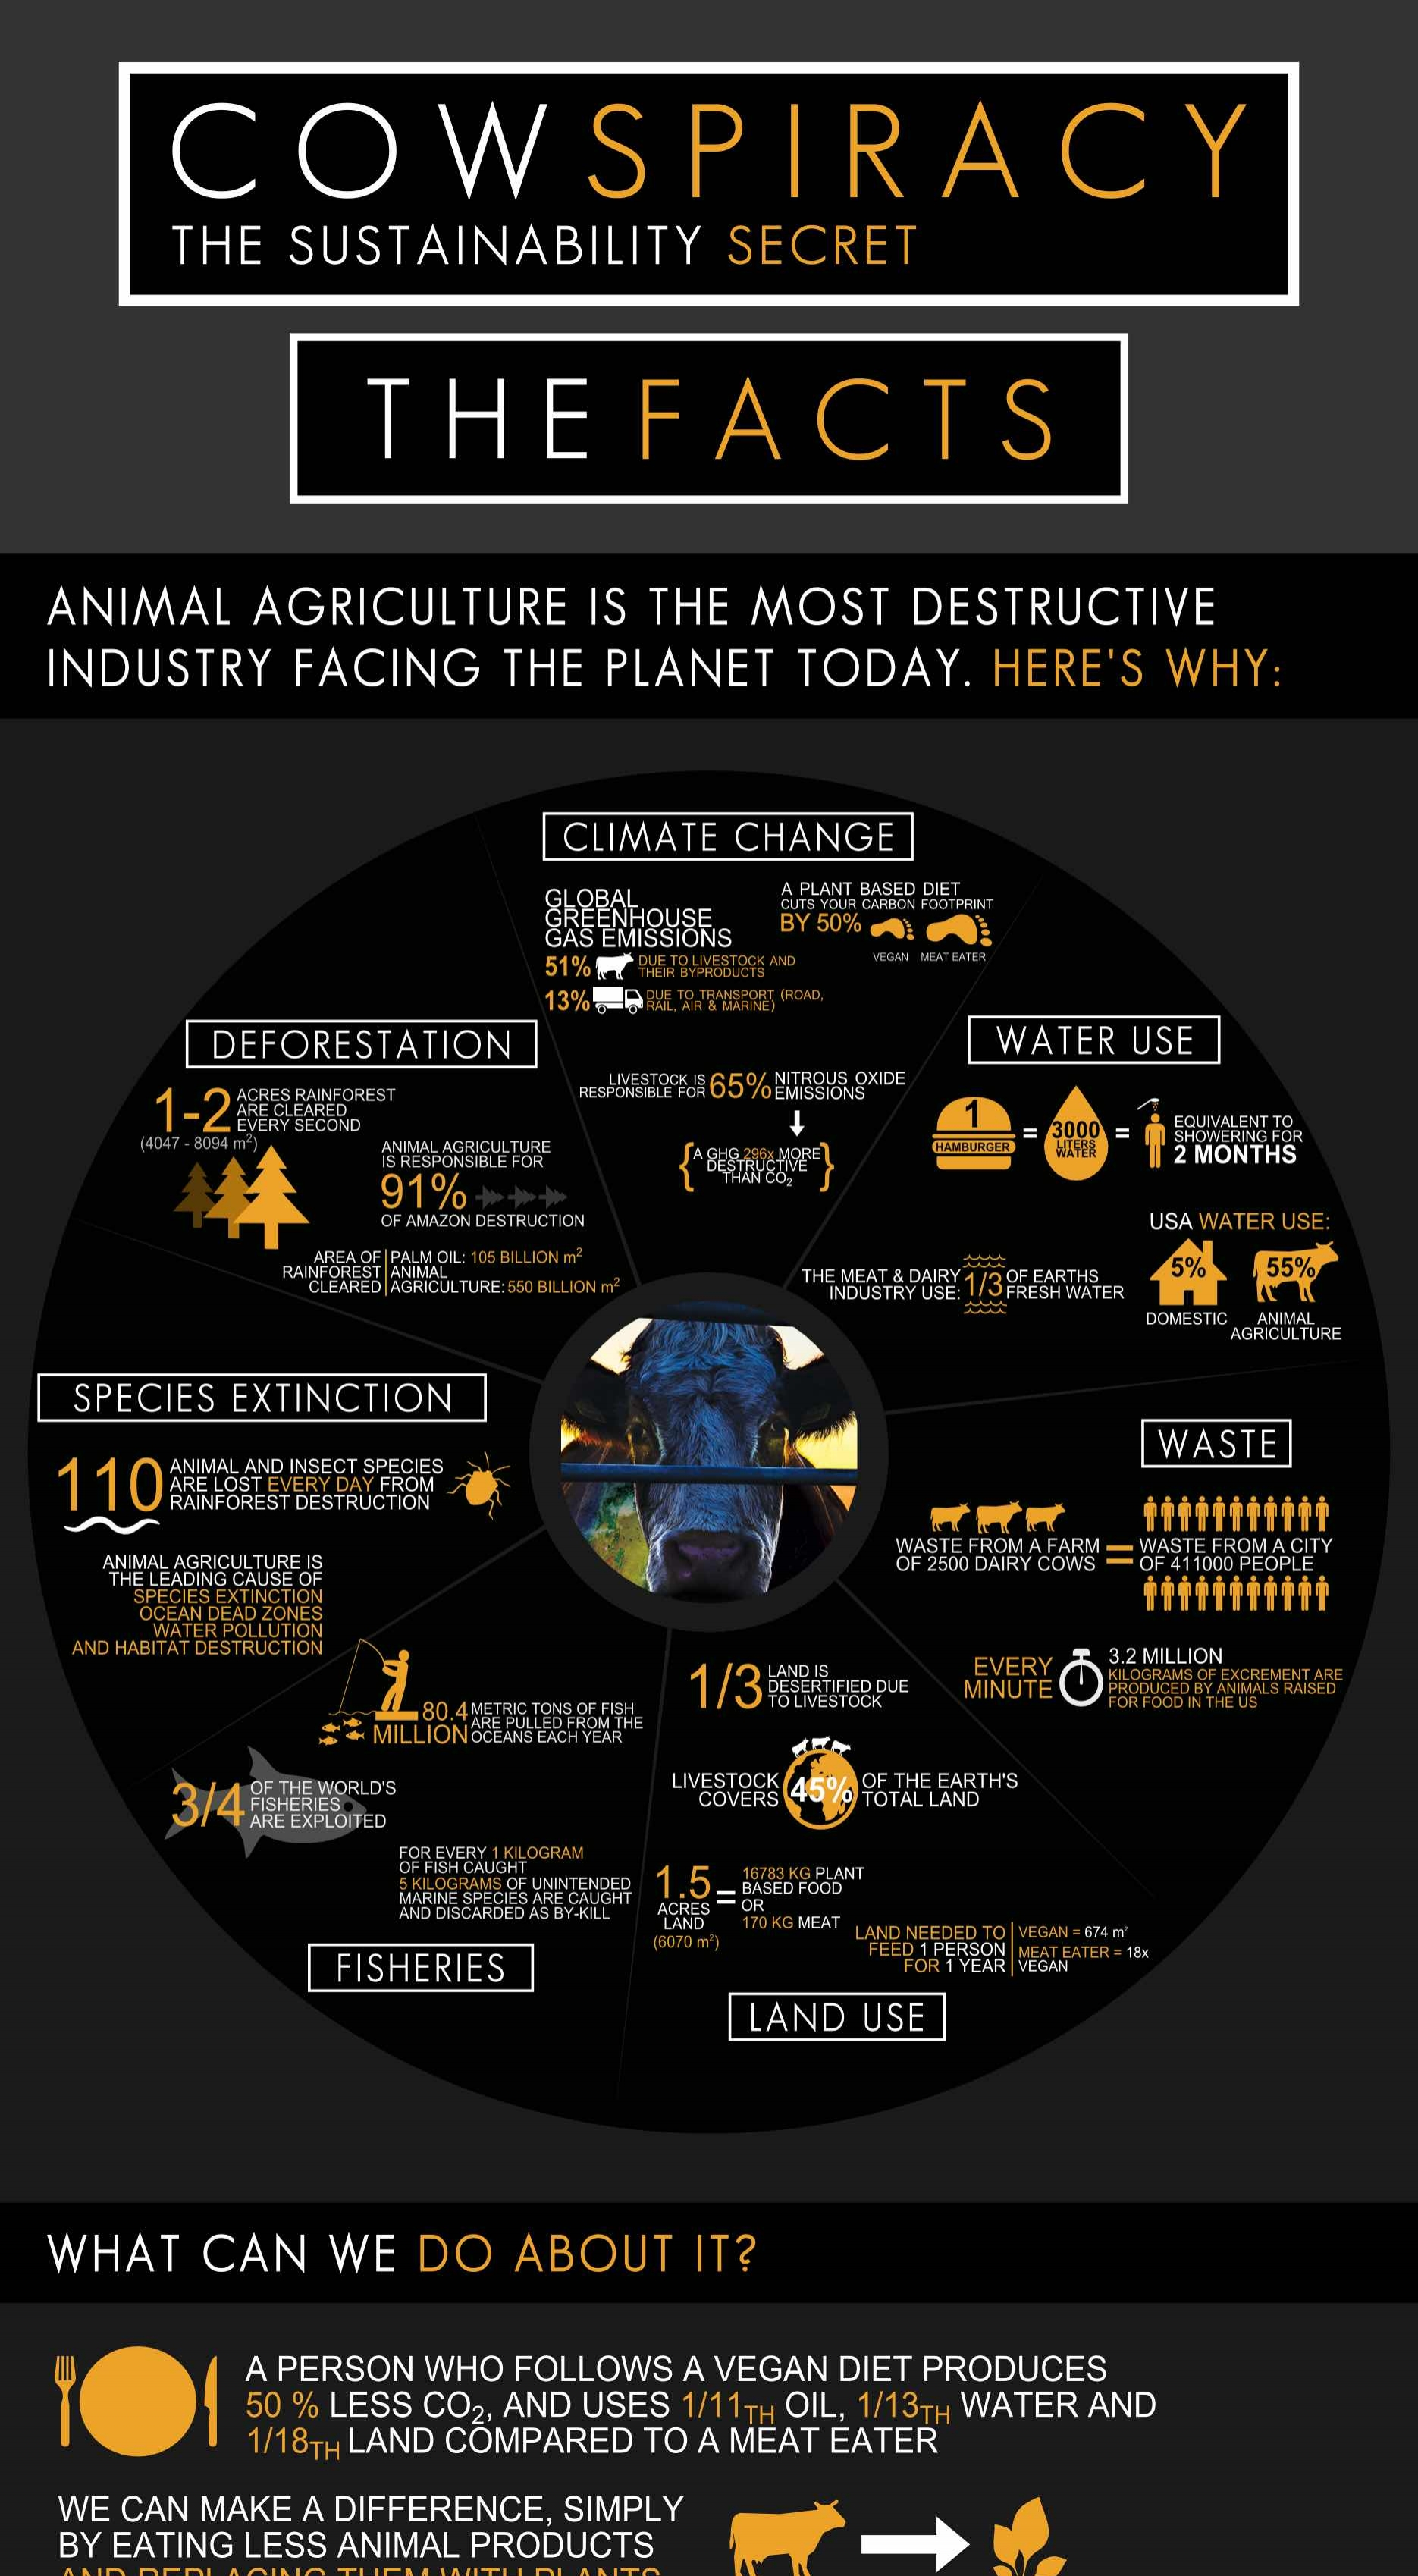 cowspiracy-facts-sustainability-infographic.jpg